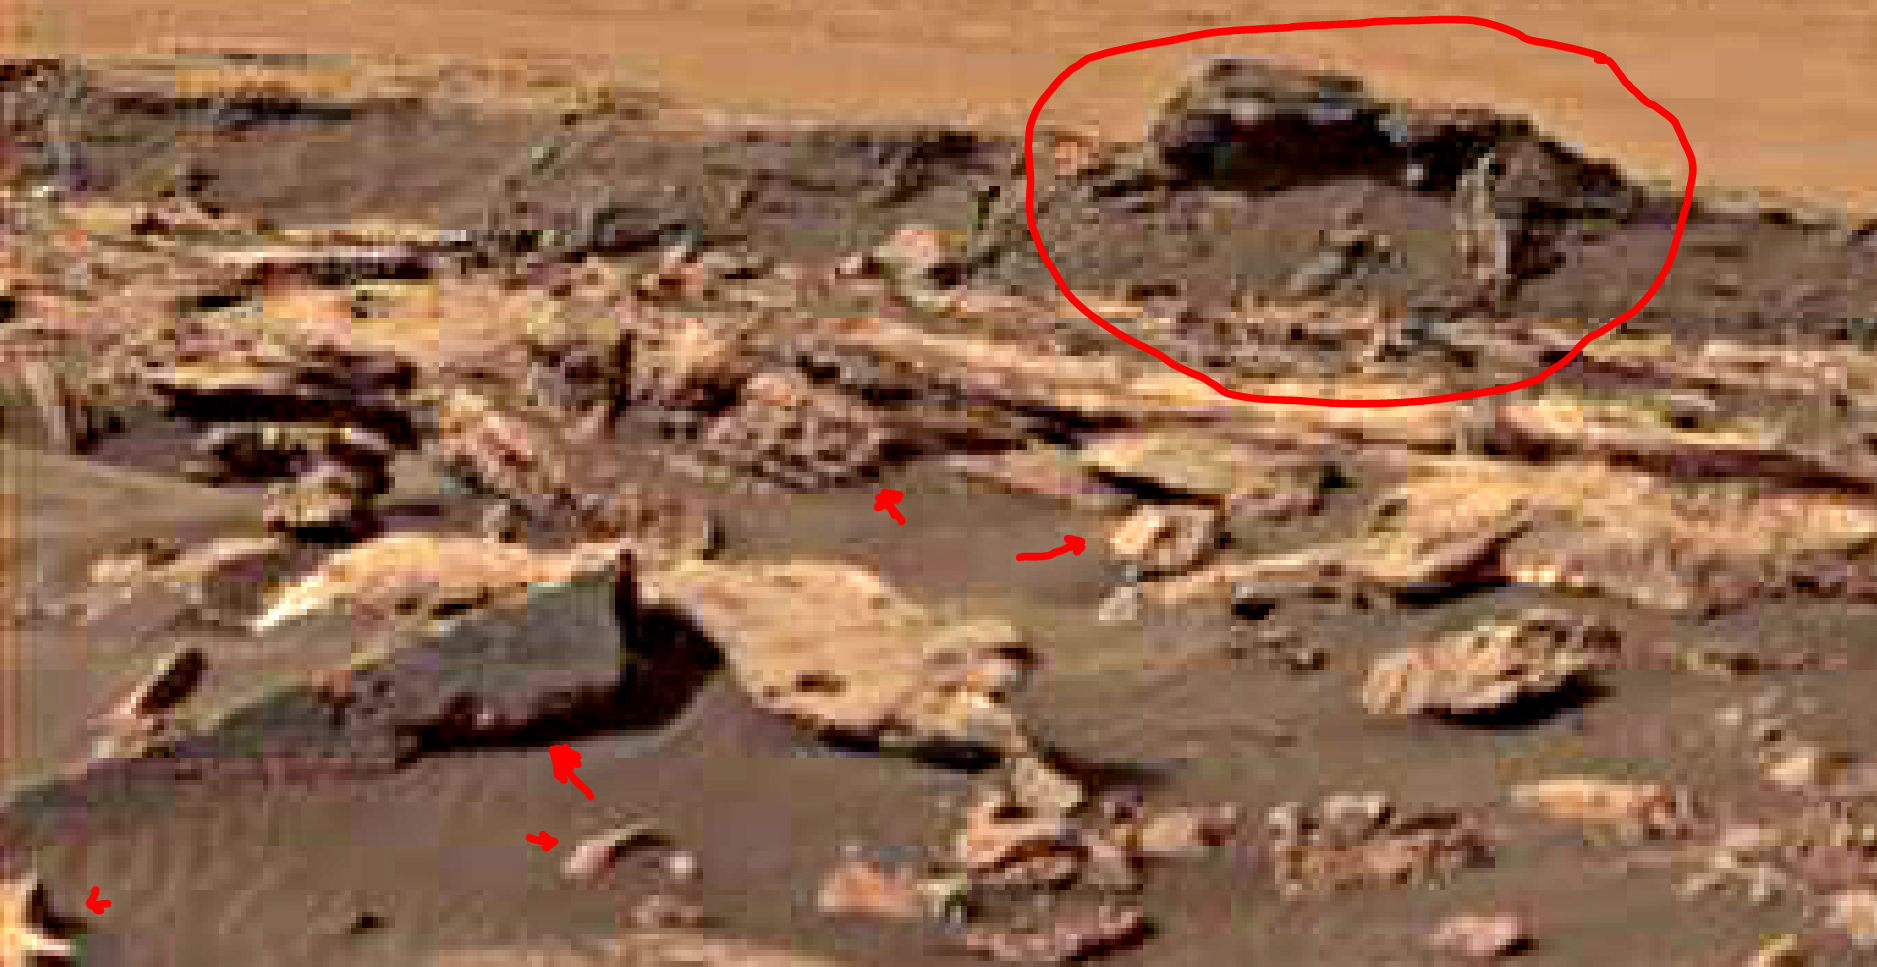 mars-sol-1507-anomaly-artifacts-1-was-life-on-mars